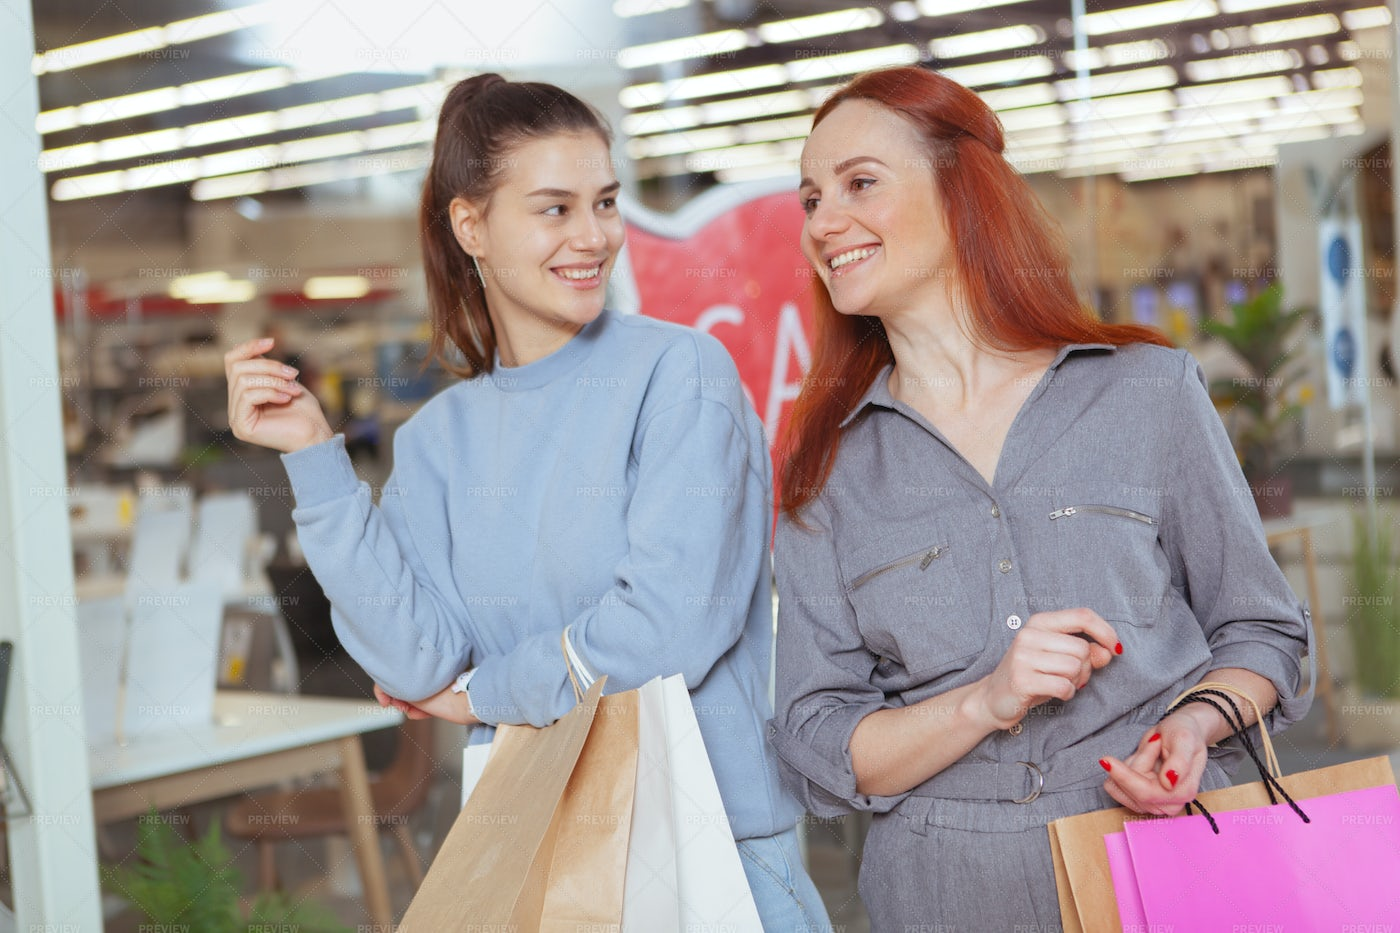 Friends Shopping At The Mall: Stock Photos